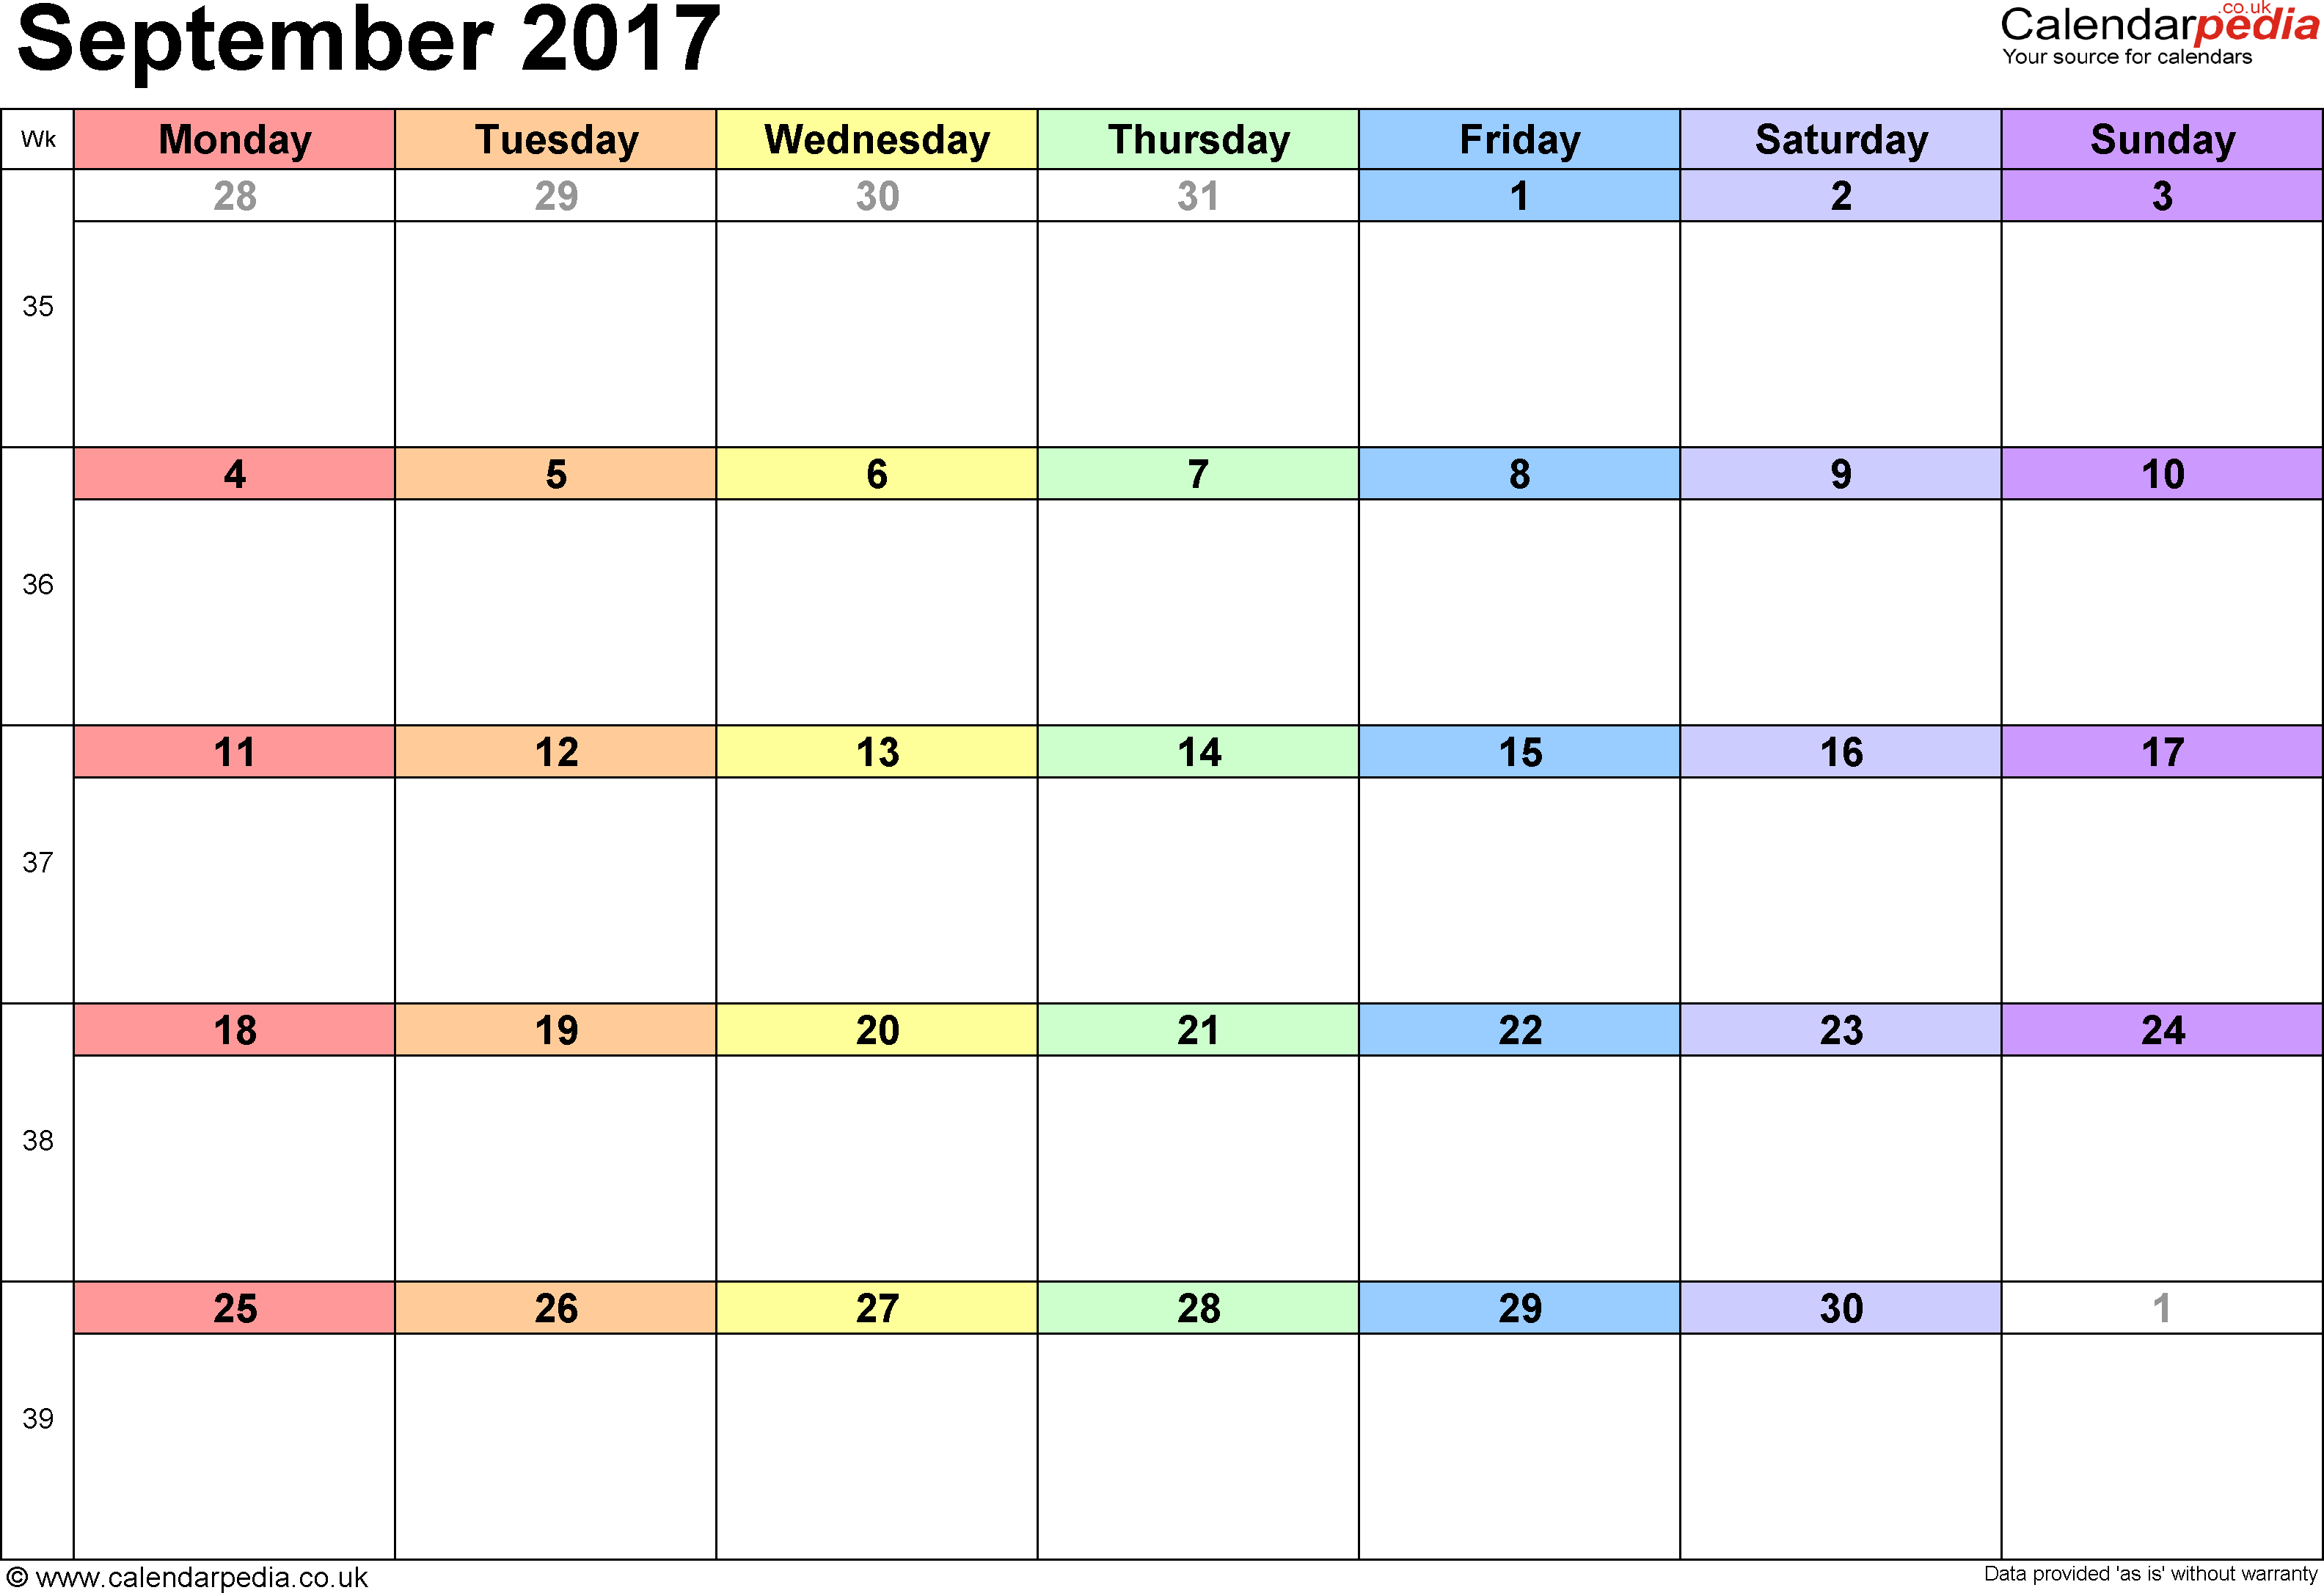 Calendar September 2017, landscape orientation, 1 page, with UK bank holidays and week numbers